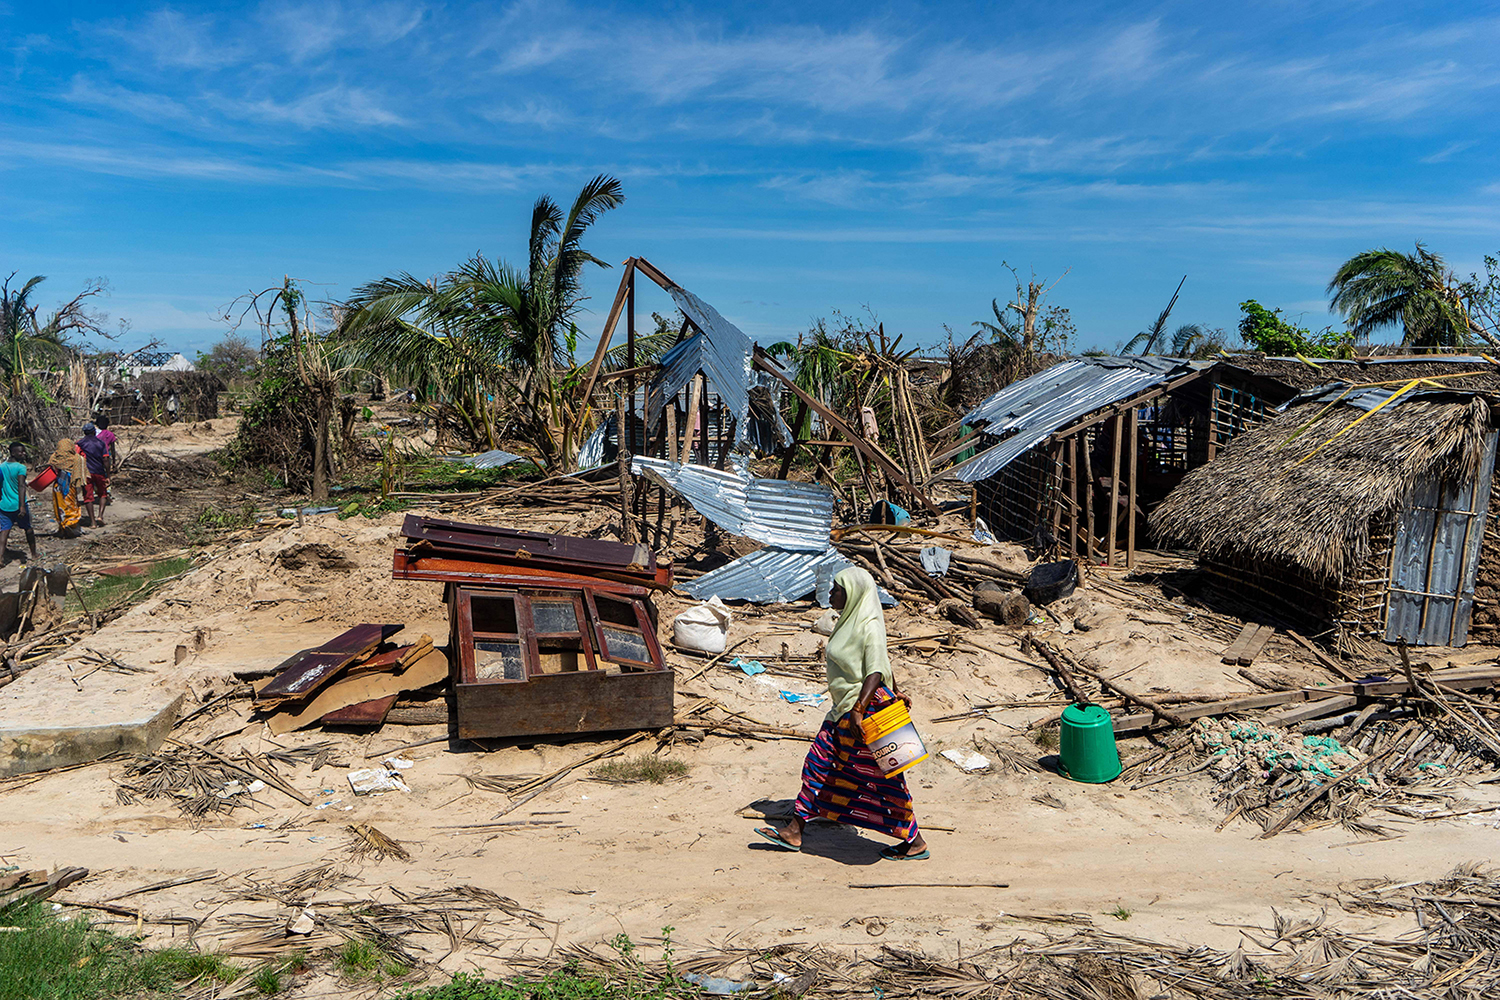 A woman walks past destroyed houses on her way to an aid distribution center in the coastal village of Guludo on Ibo Island, Mozambique, on May 13 in the aftermath of a devastating cyclone. ZINYANGE AUNTONY/AFP/Getty Images